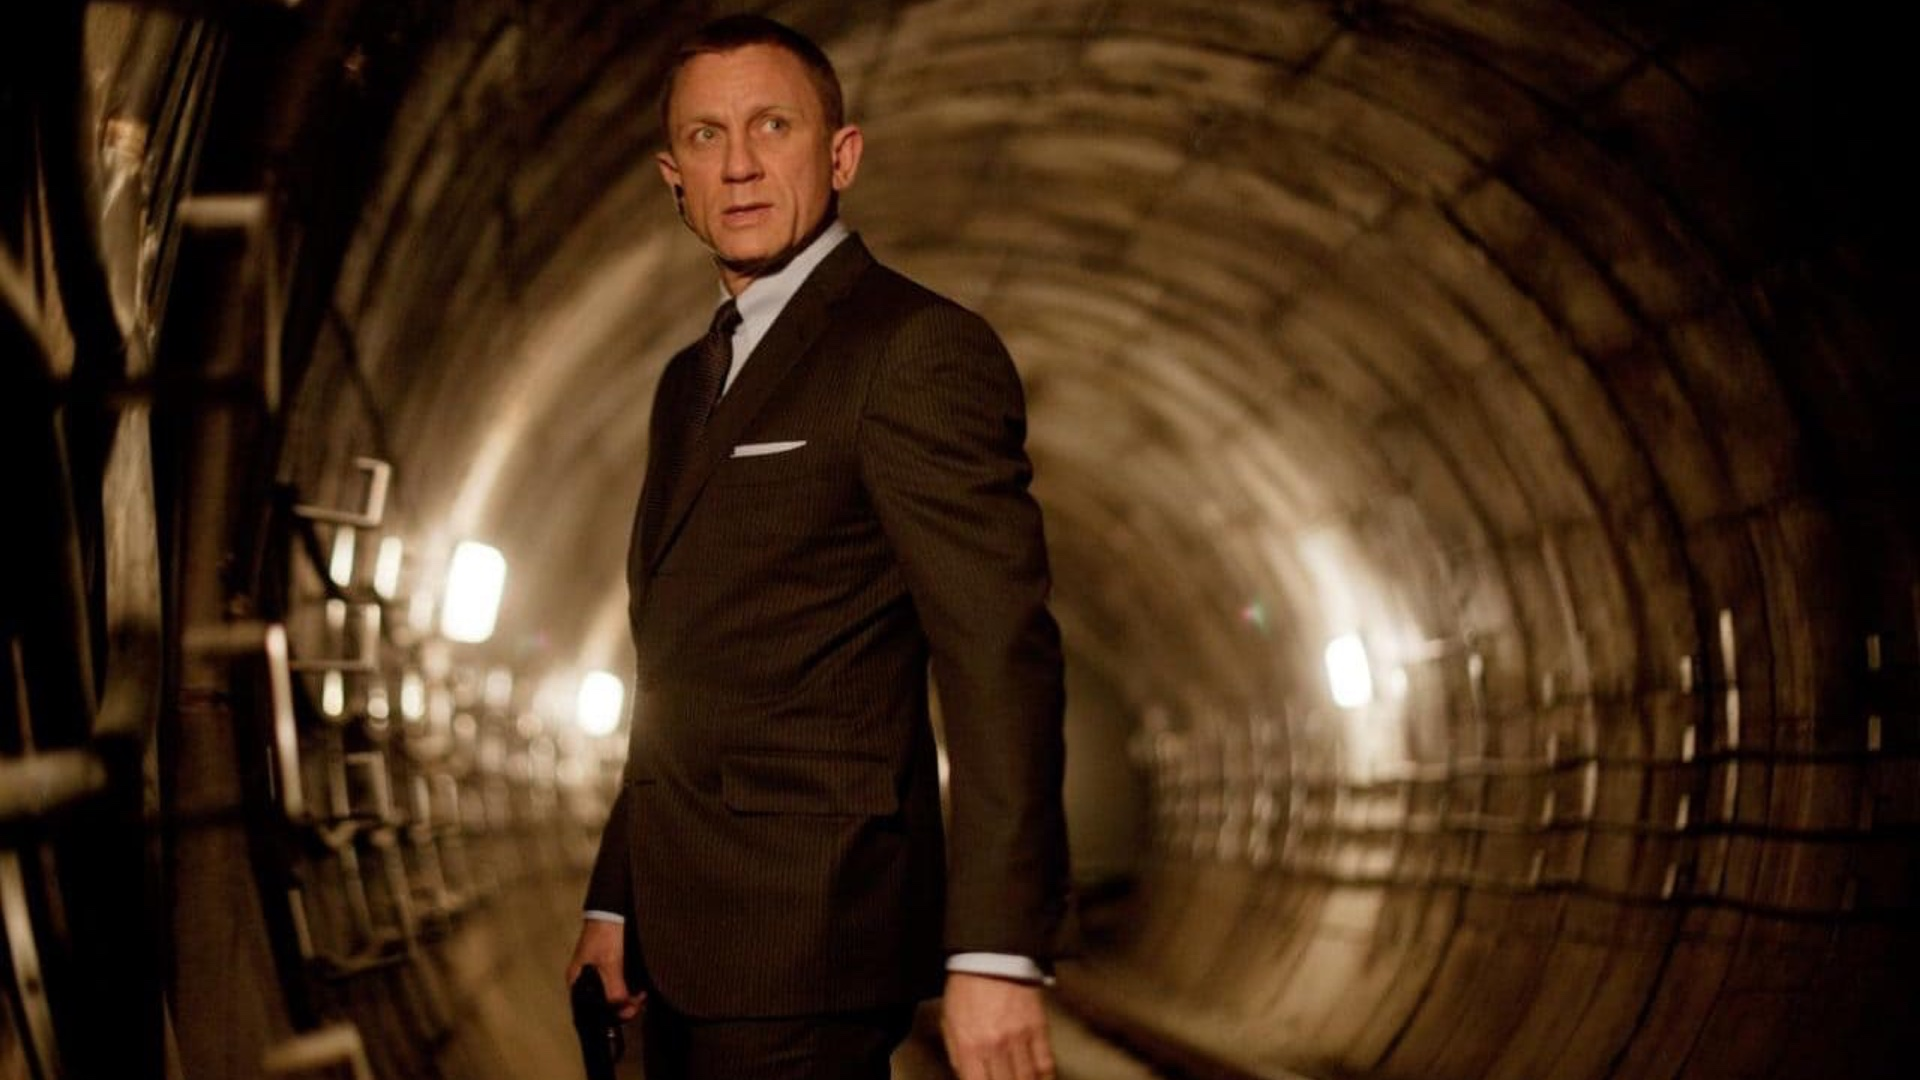 bond-25-halts-production-after-daniel-craig-is-injured-while-shooting-social.jpg